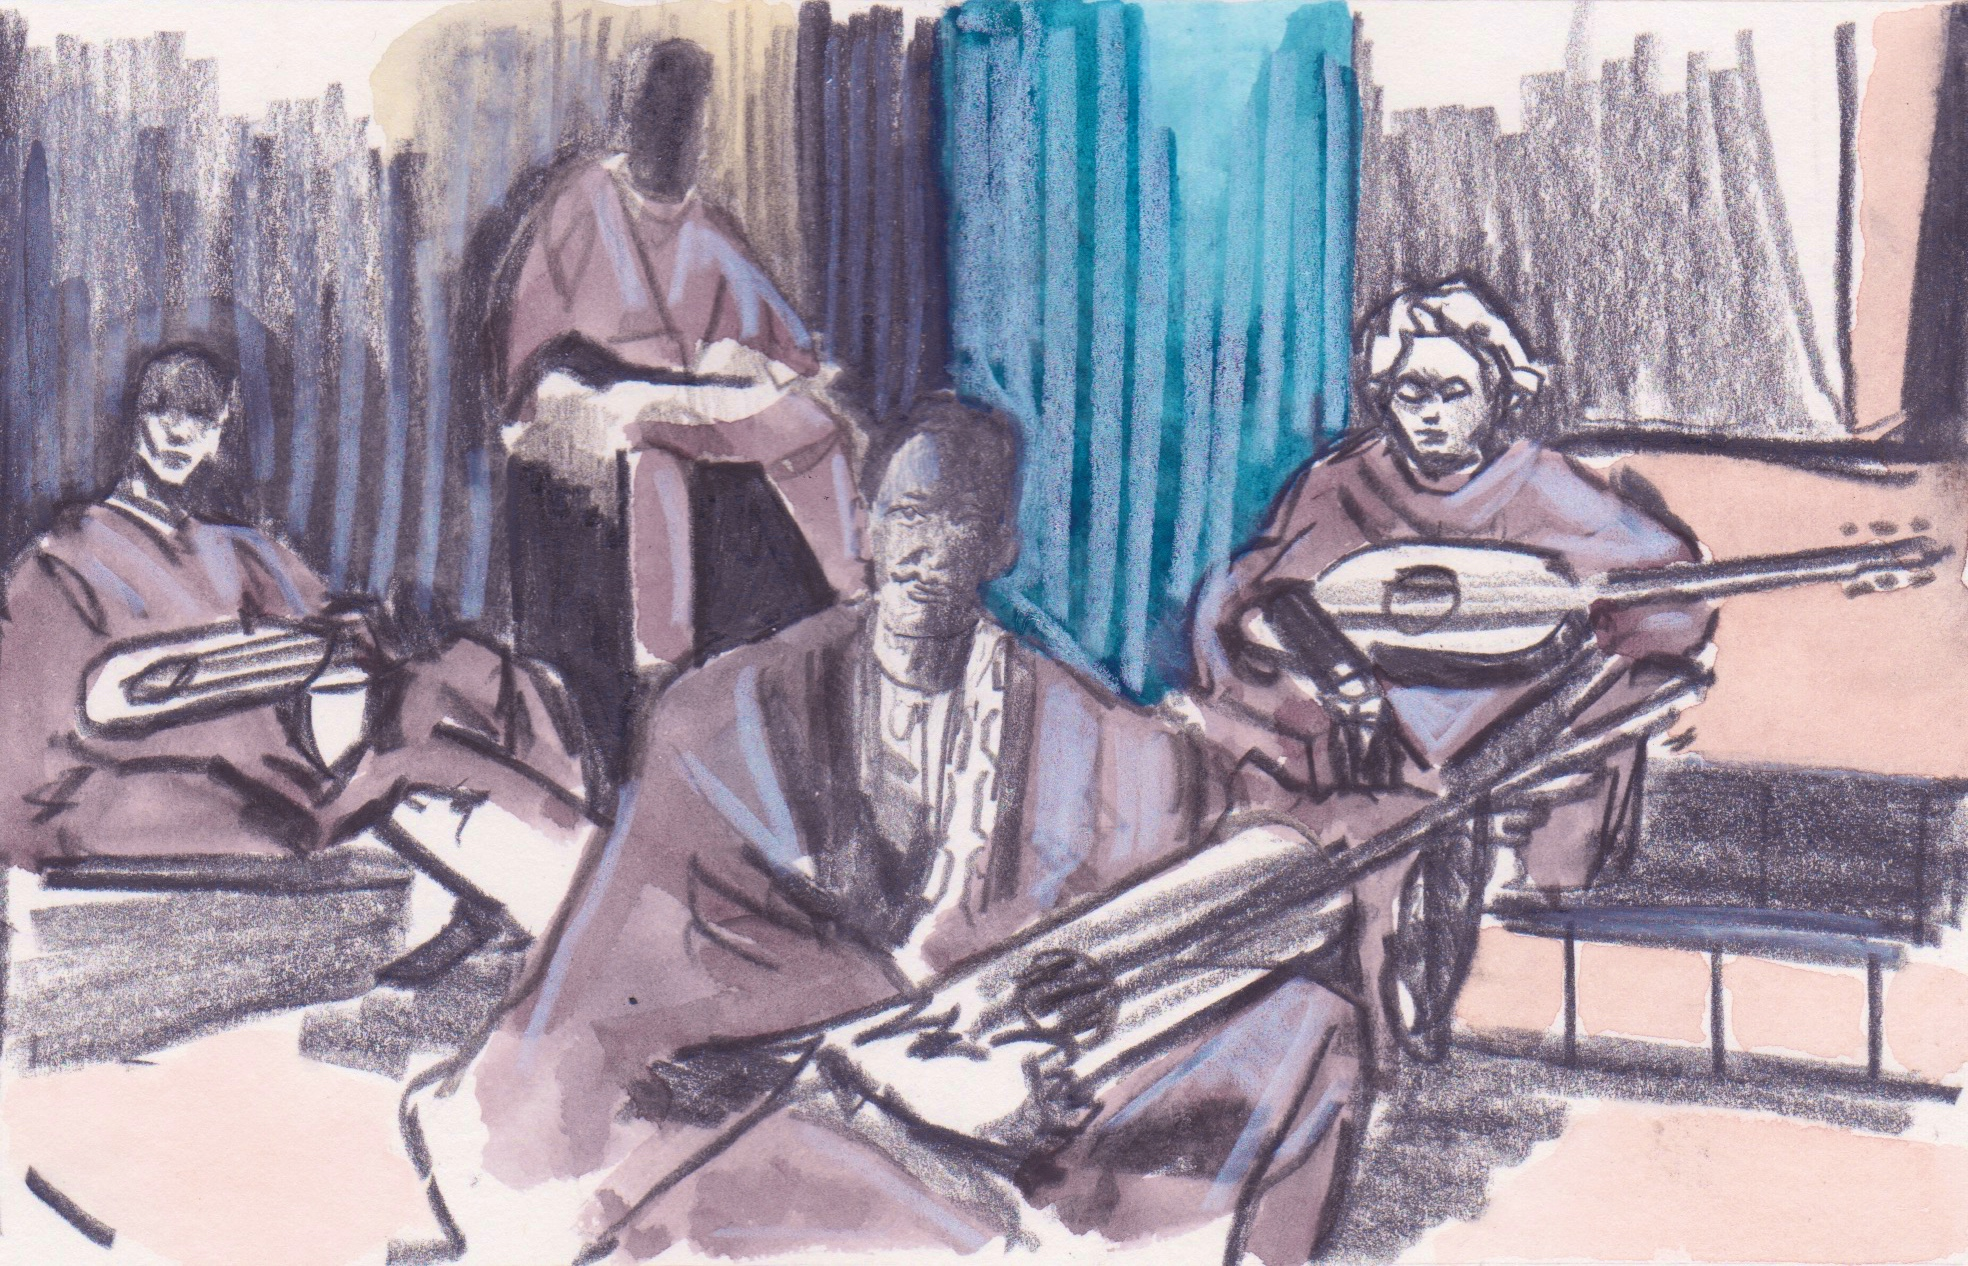 01/05/15 Bassekou Kouyate has launched his latest album 'Ba Power'. Kouyate is a master of the lute and is a well-known name in Mali